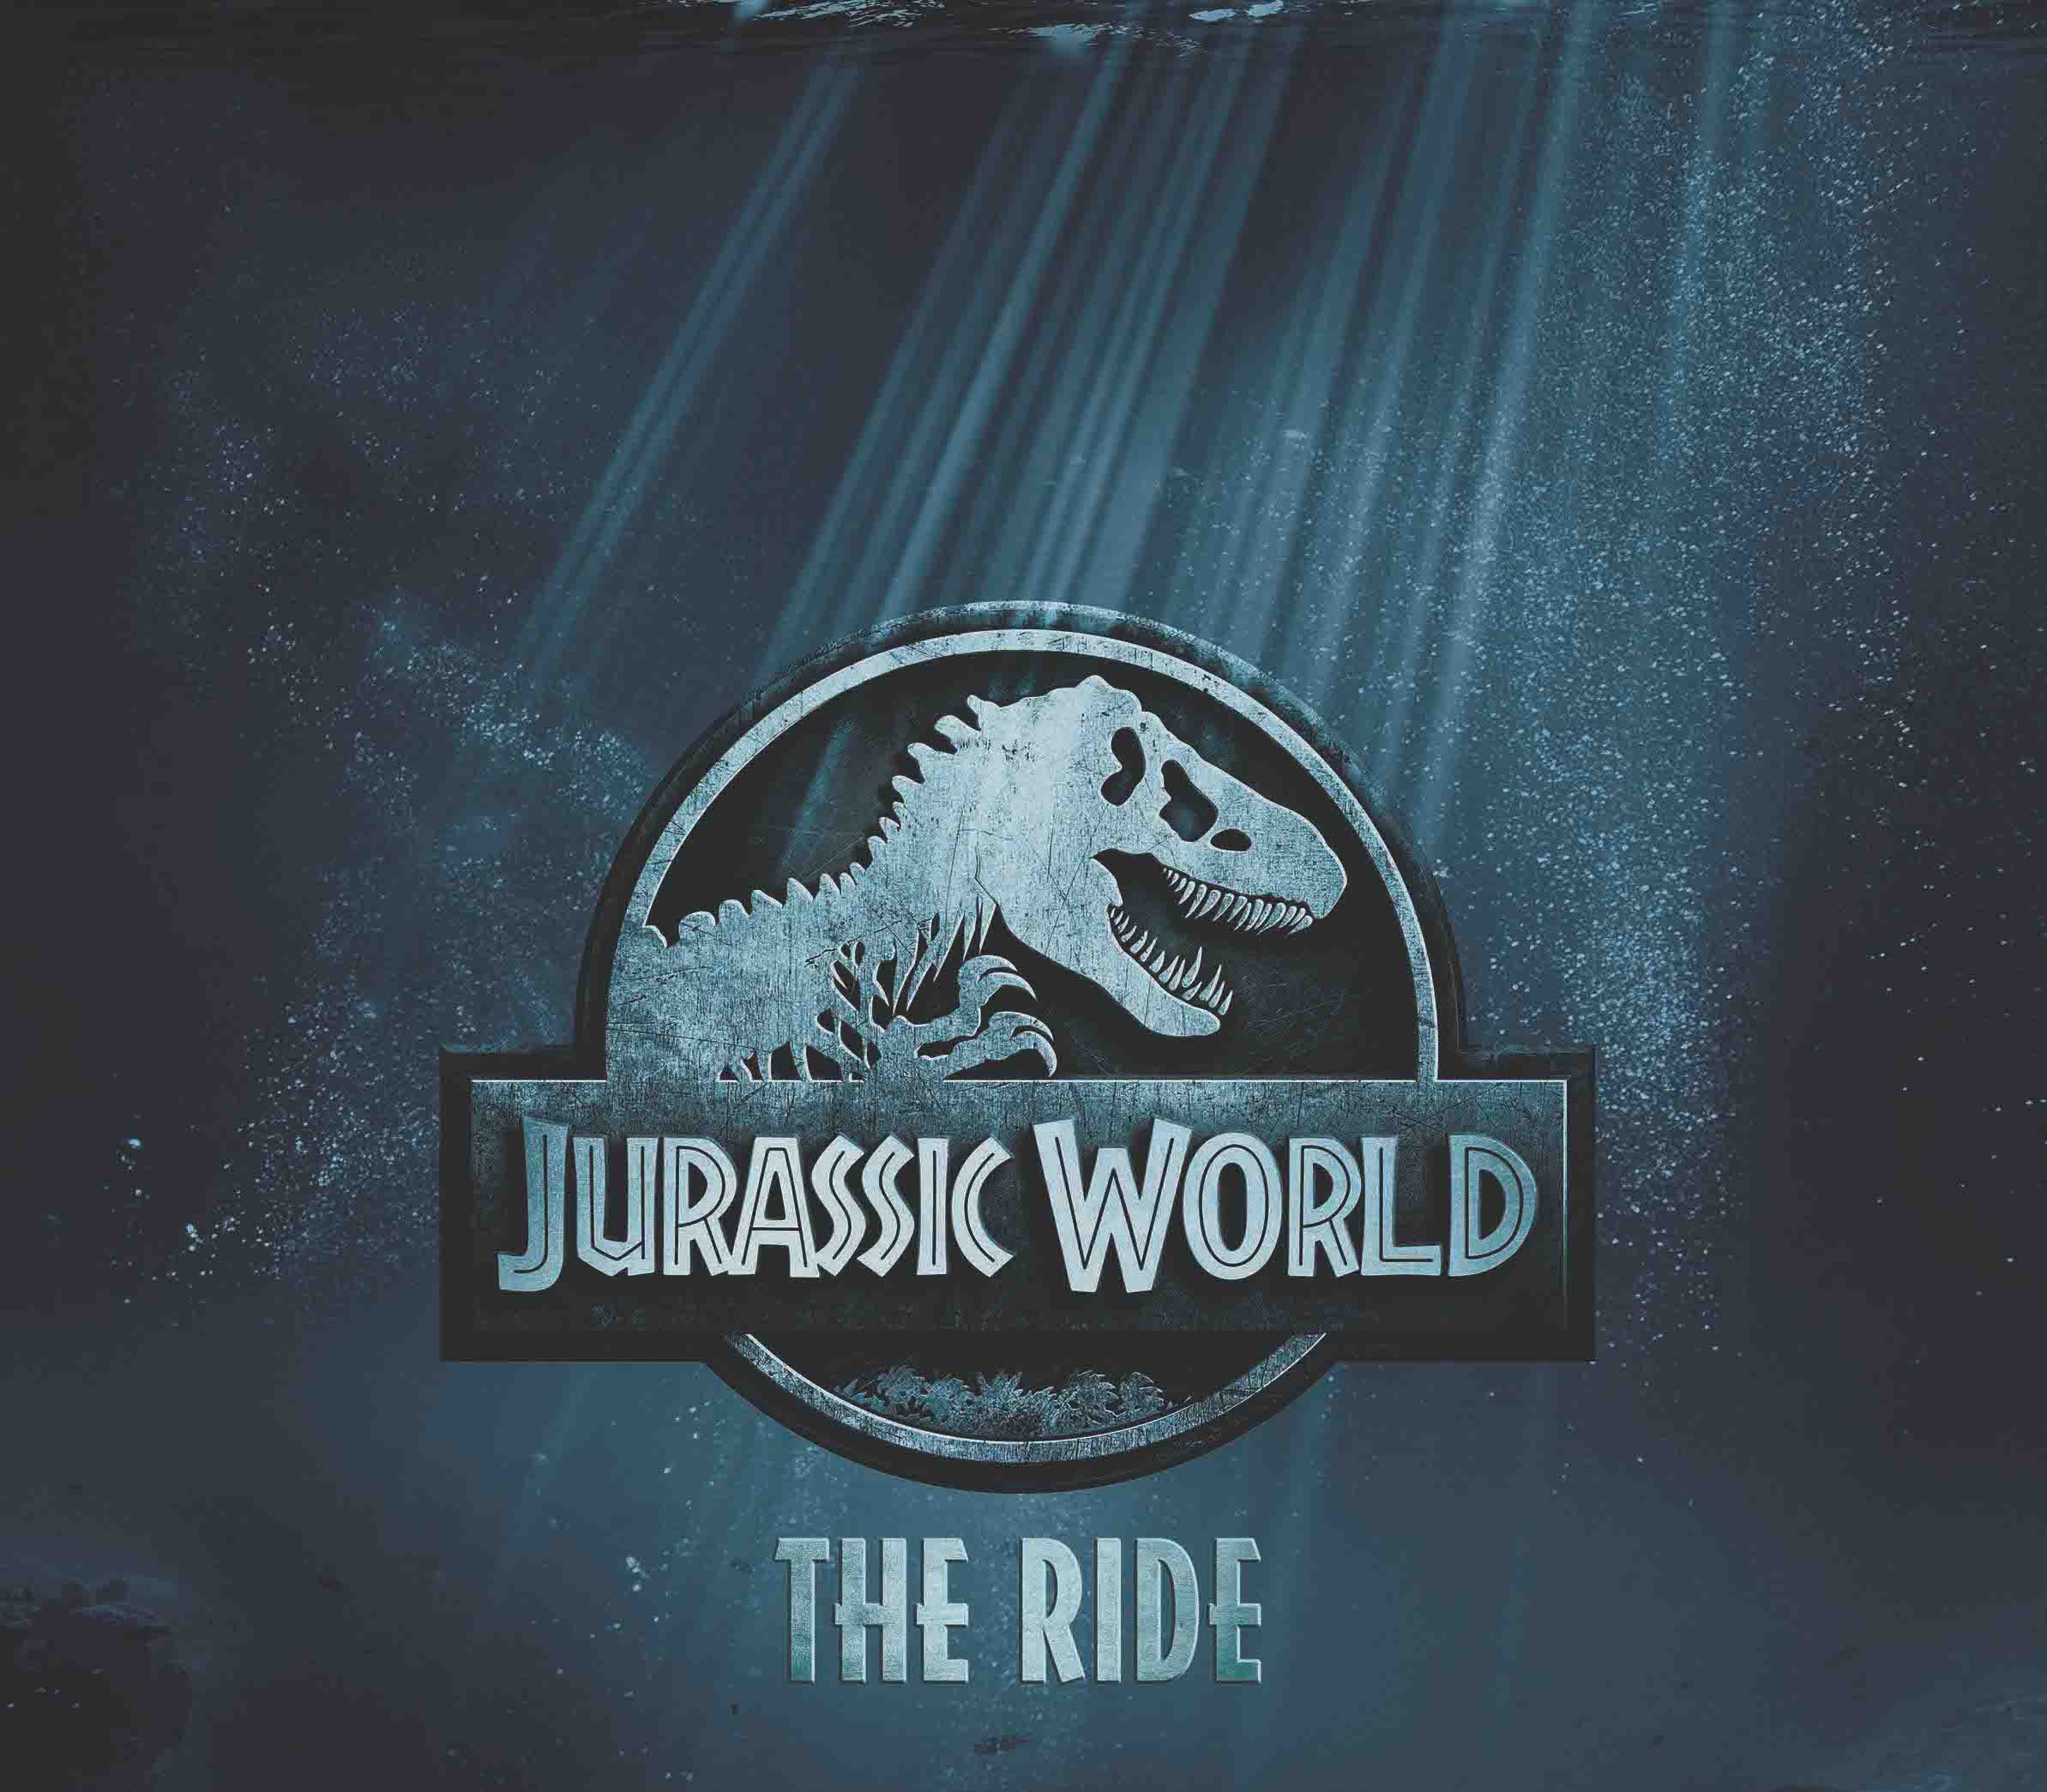 jurassic world the ride, universal studios hollywood